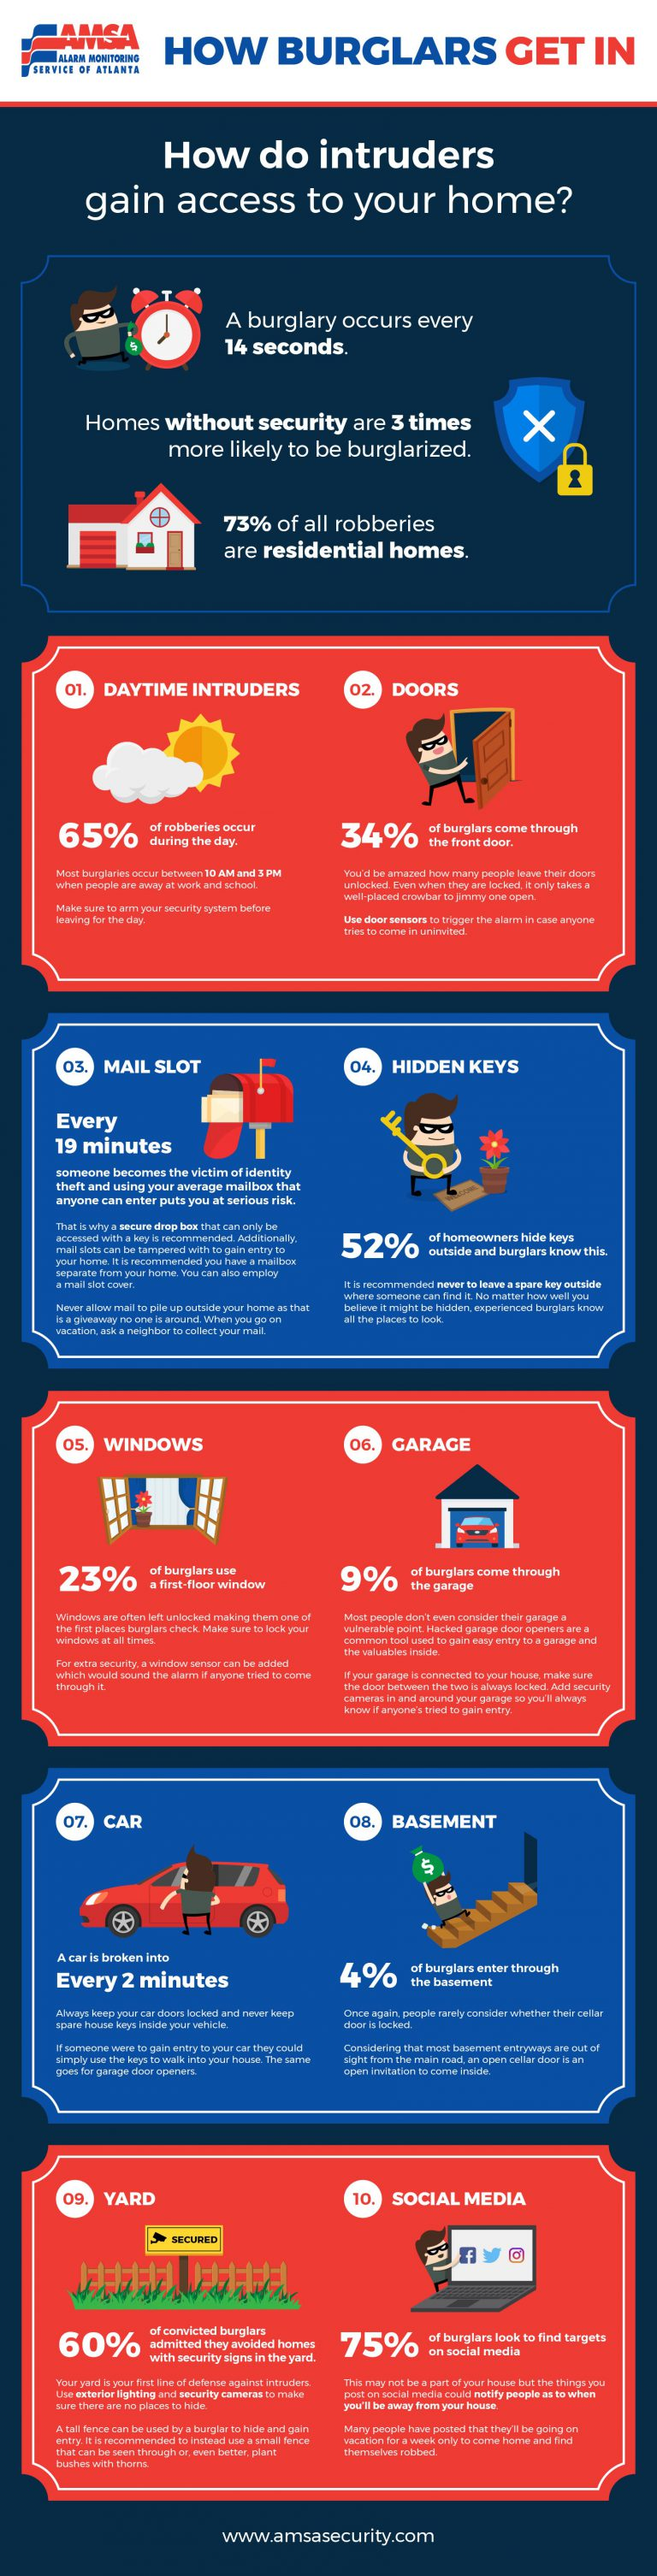 how-burglars-get-in-infographic-plaza